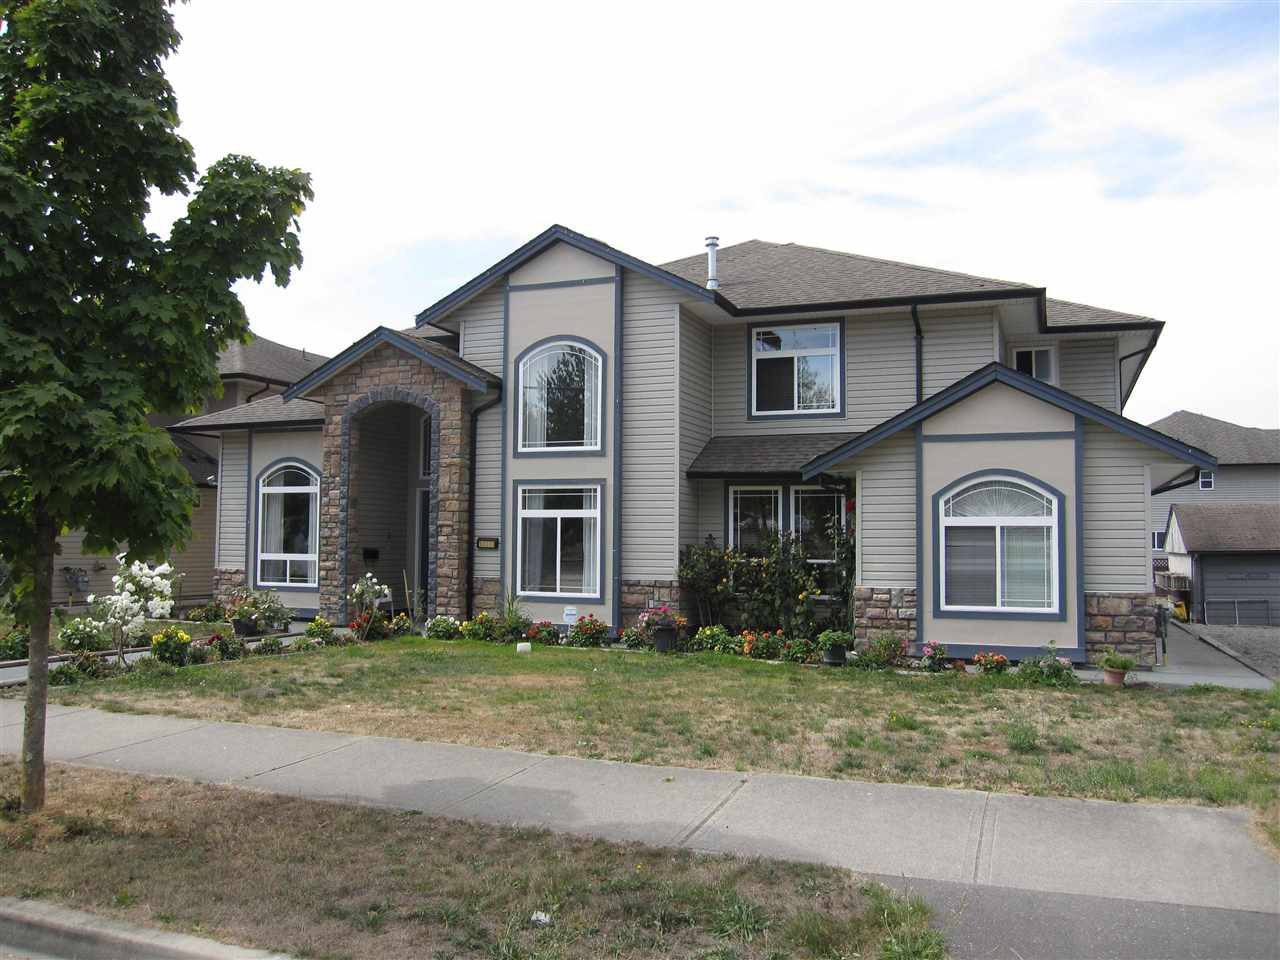 Main Photo: 12239 240 Street in Maple Ridge: East Central House for sale : MLS®# R2017770